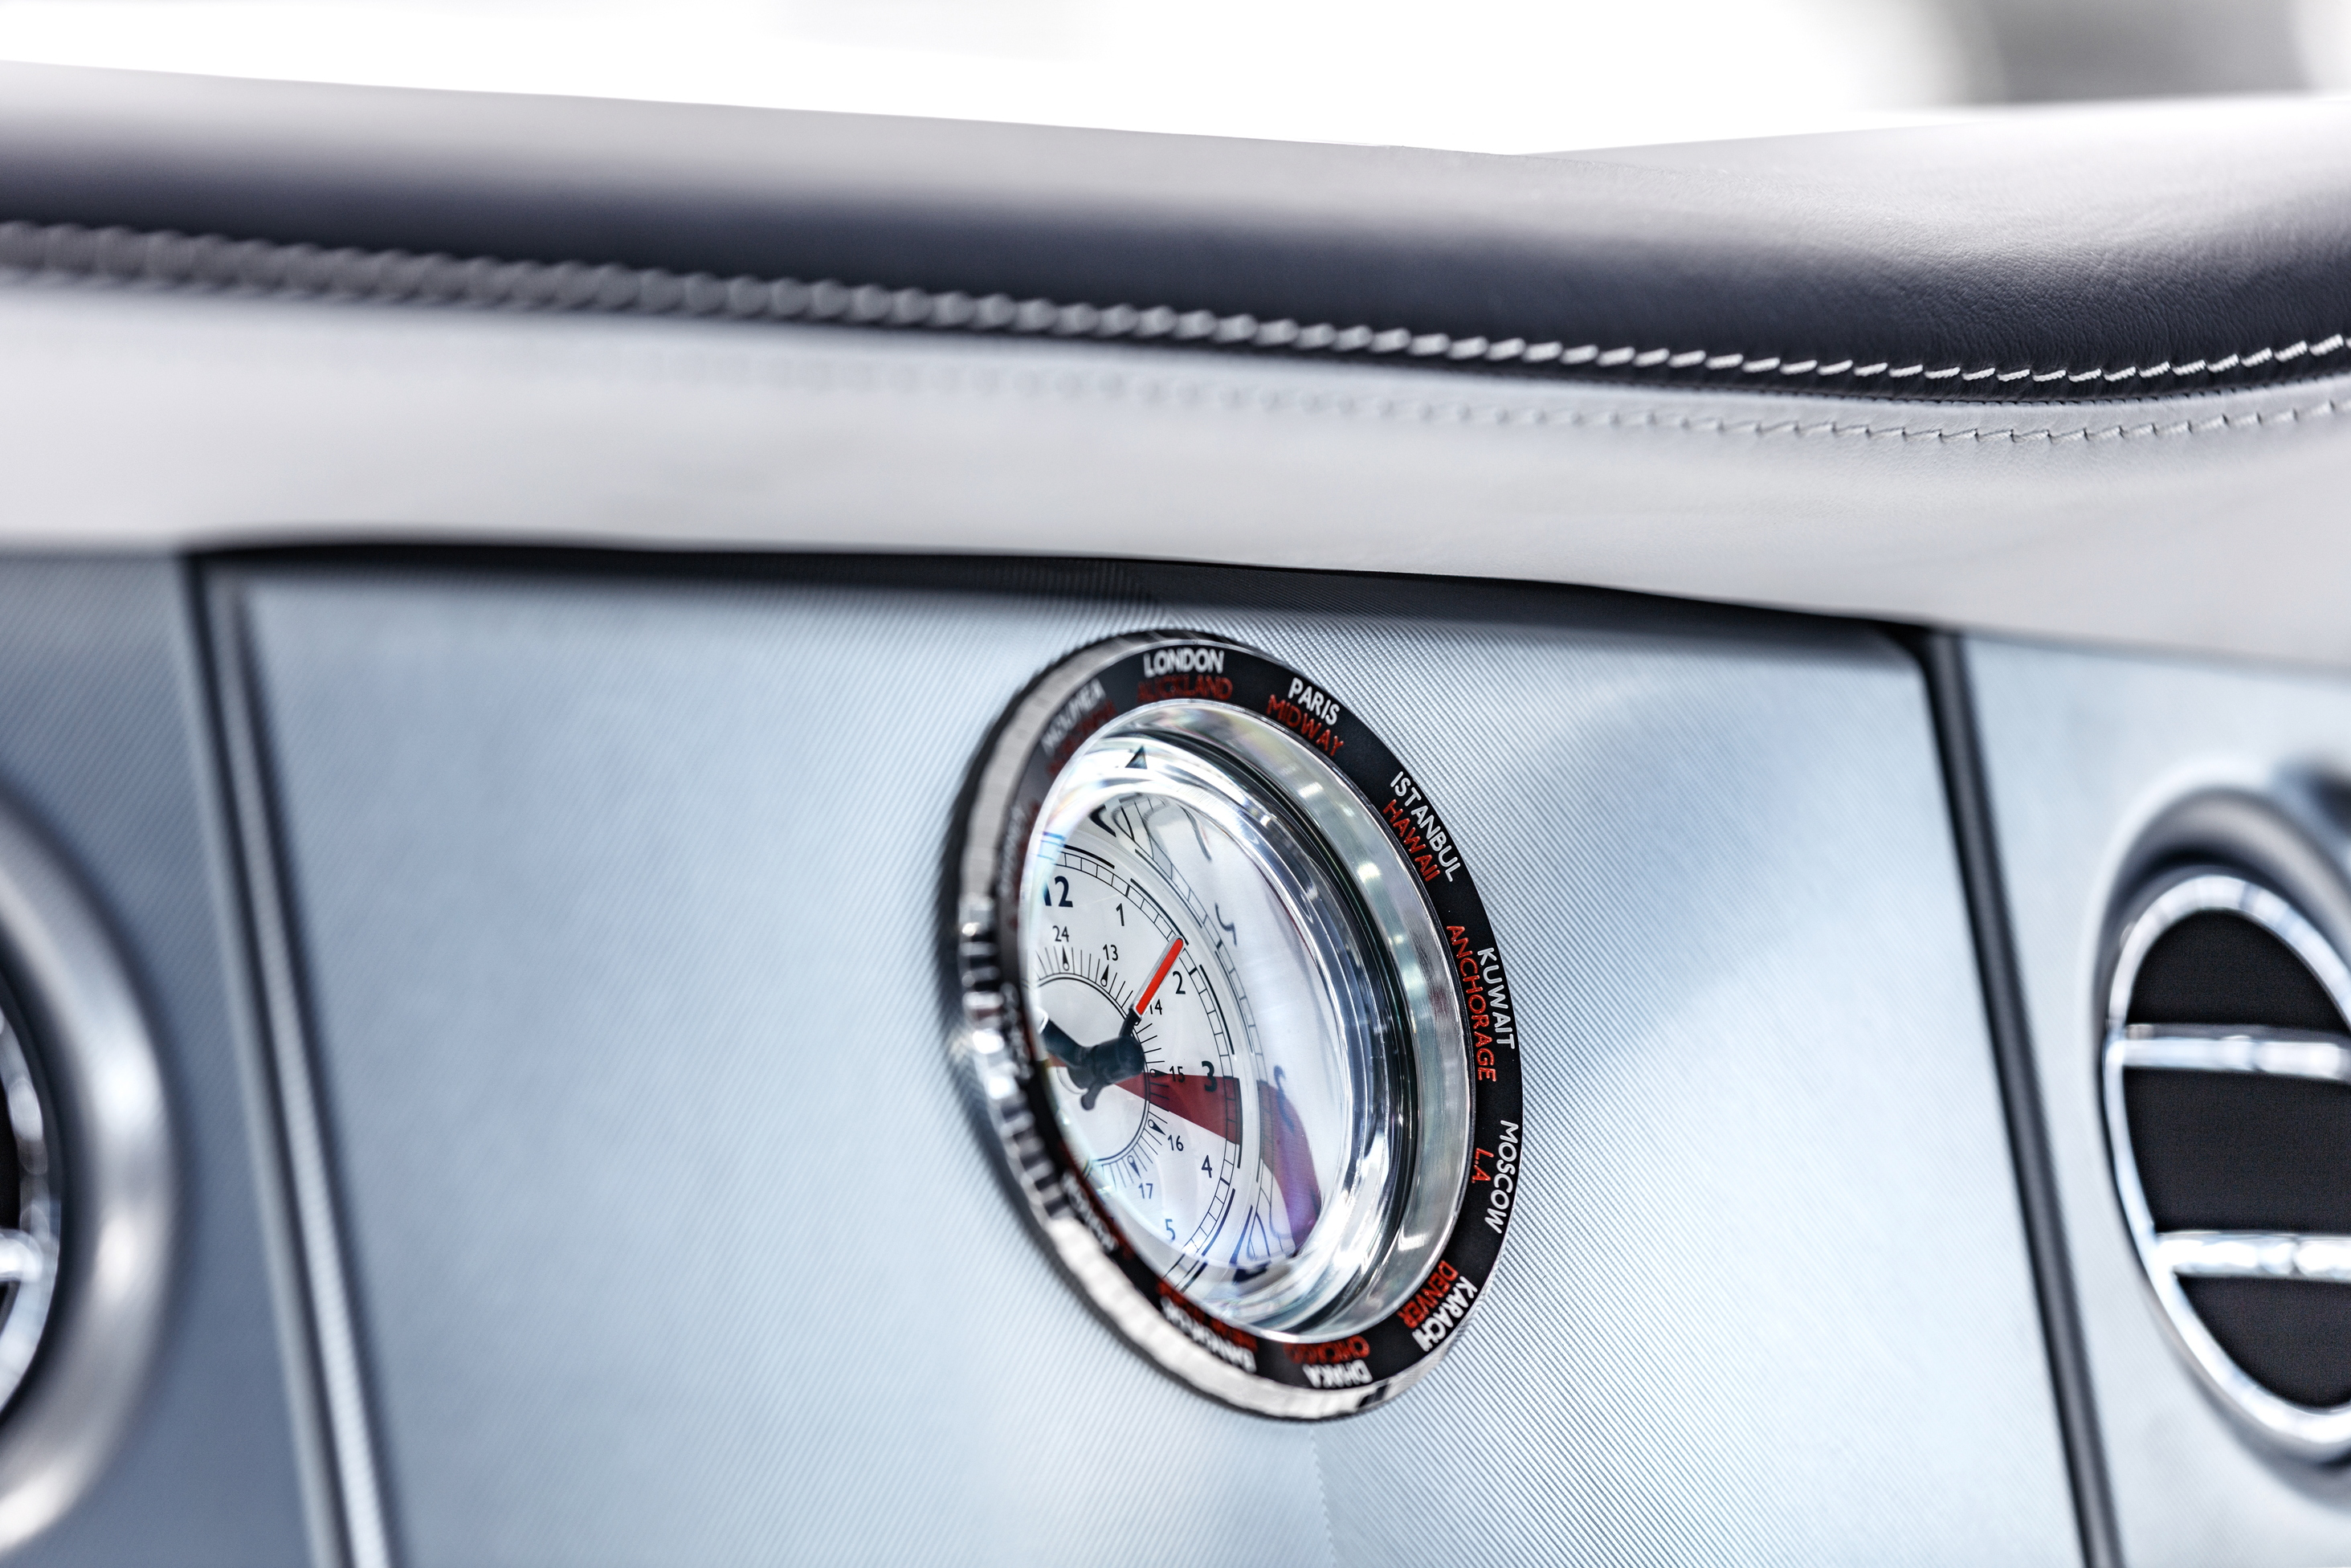 Final Rolls-Royce Phantom VII clocks